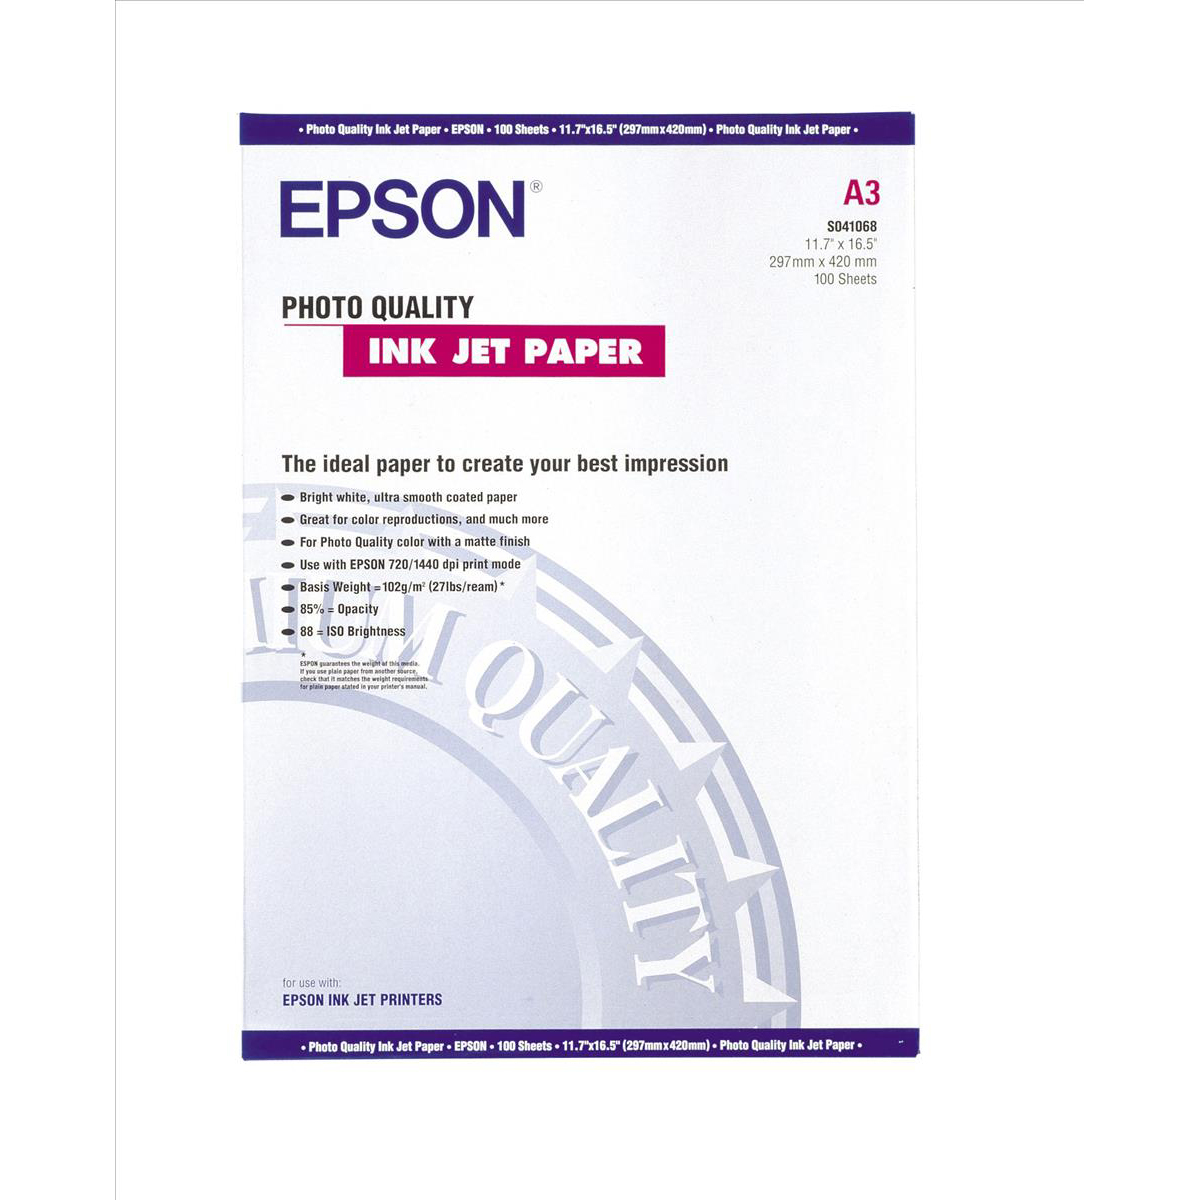 Epson Photo Quality Inkjet Paper Matt 102gsm Max.1440dpi A3 Ref C13S041068 [100 Sheets]